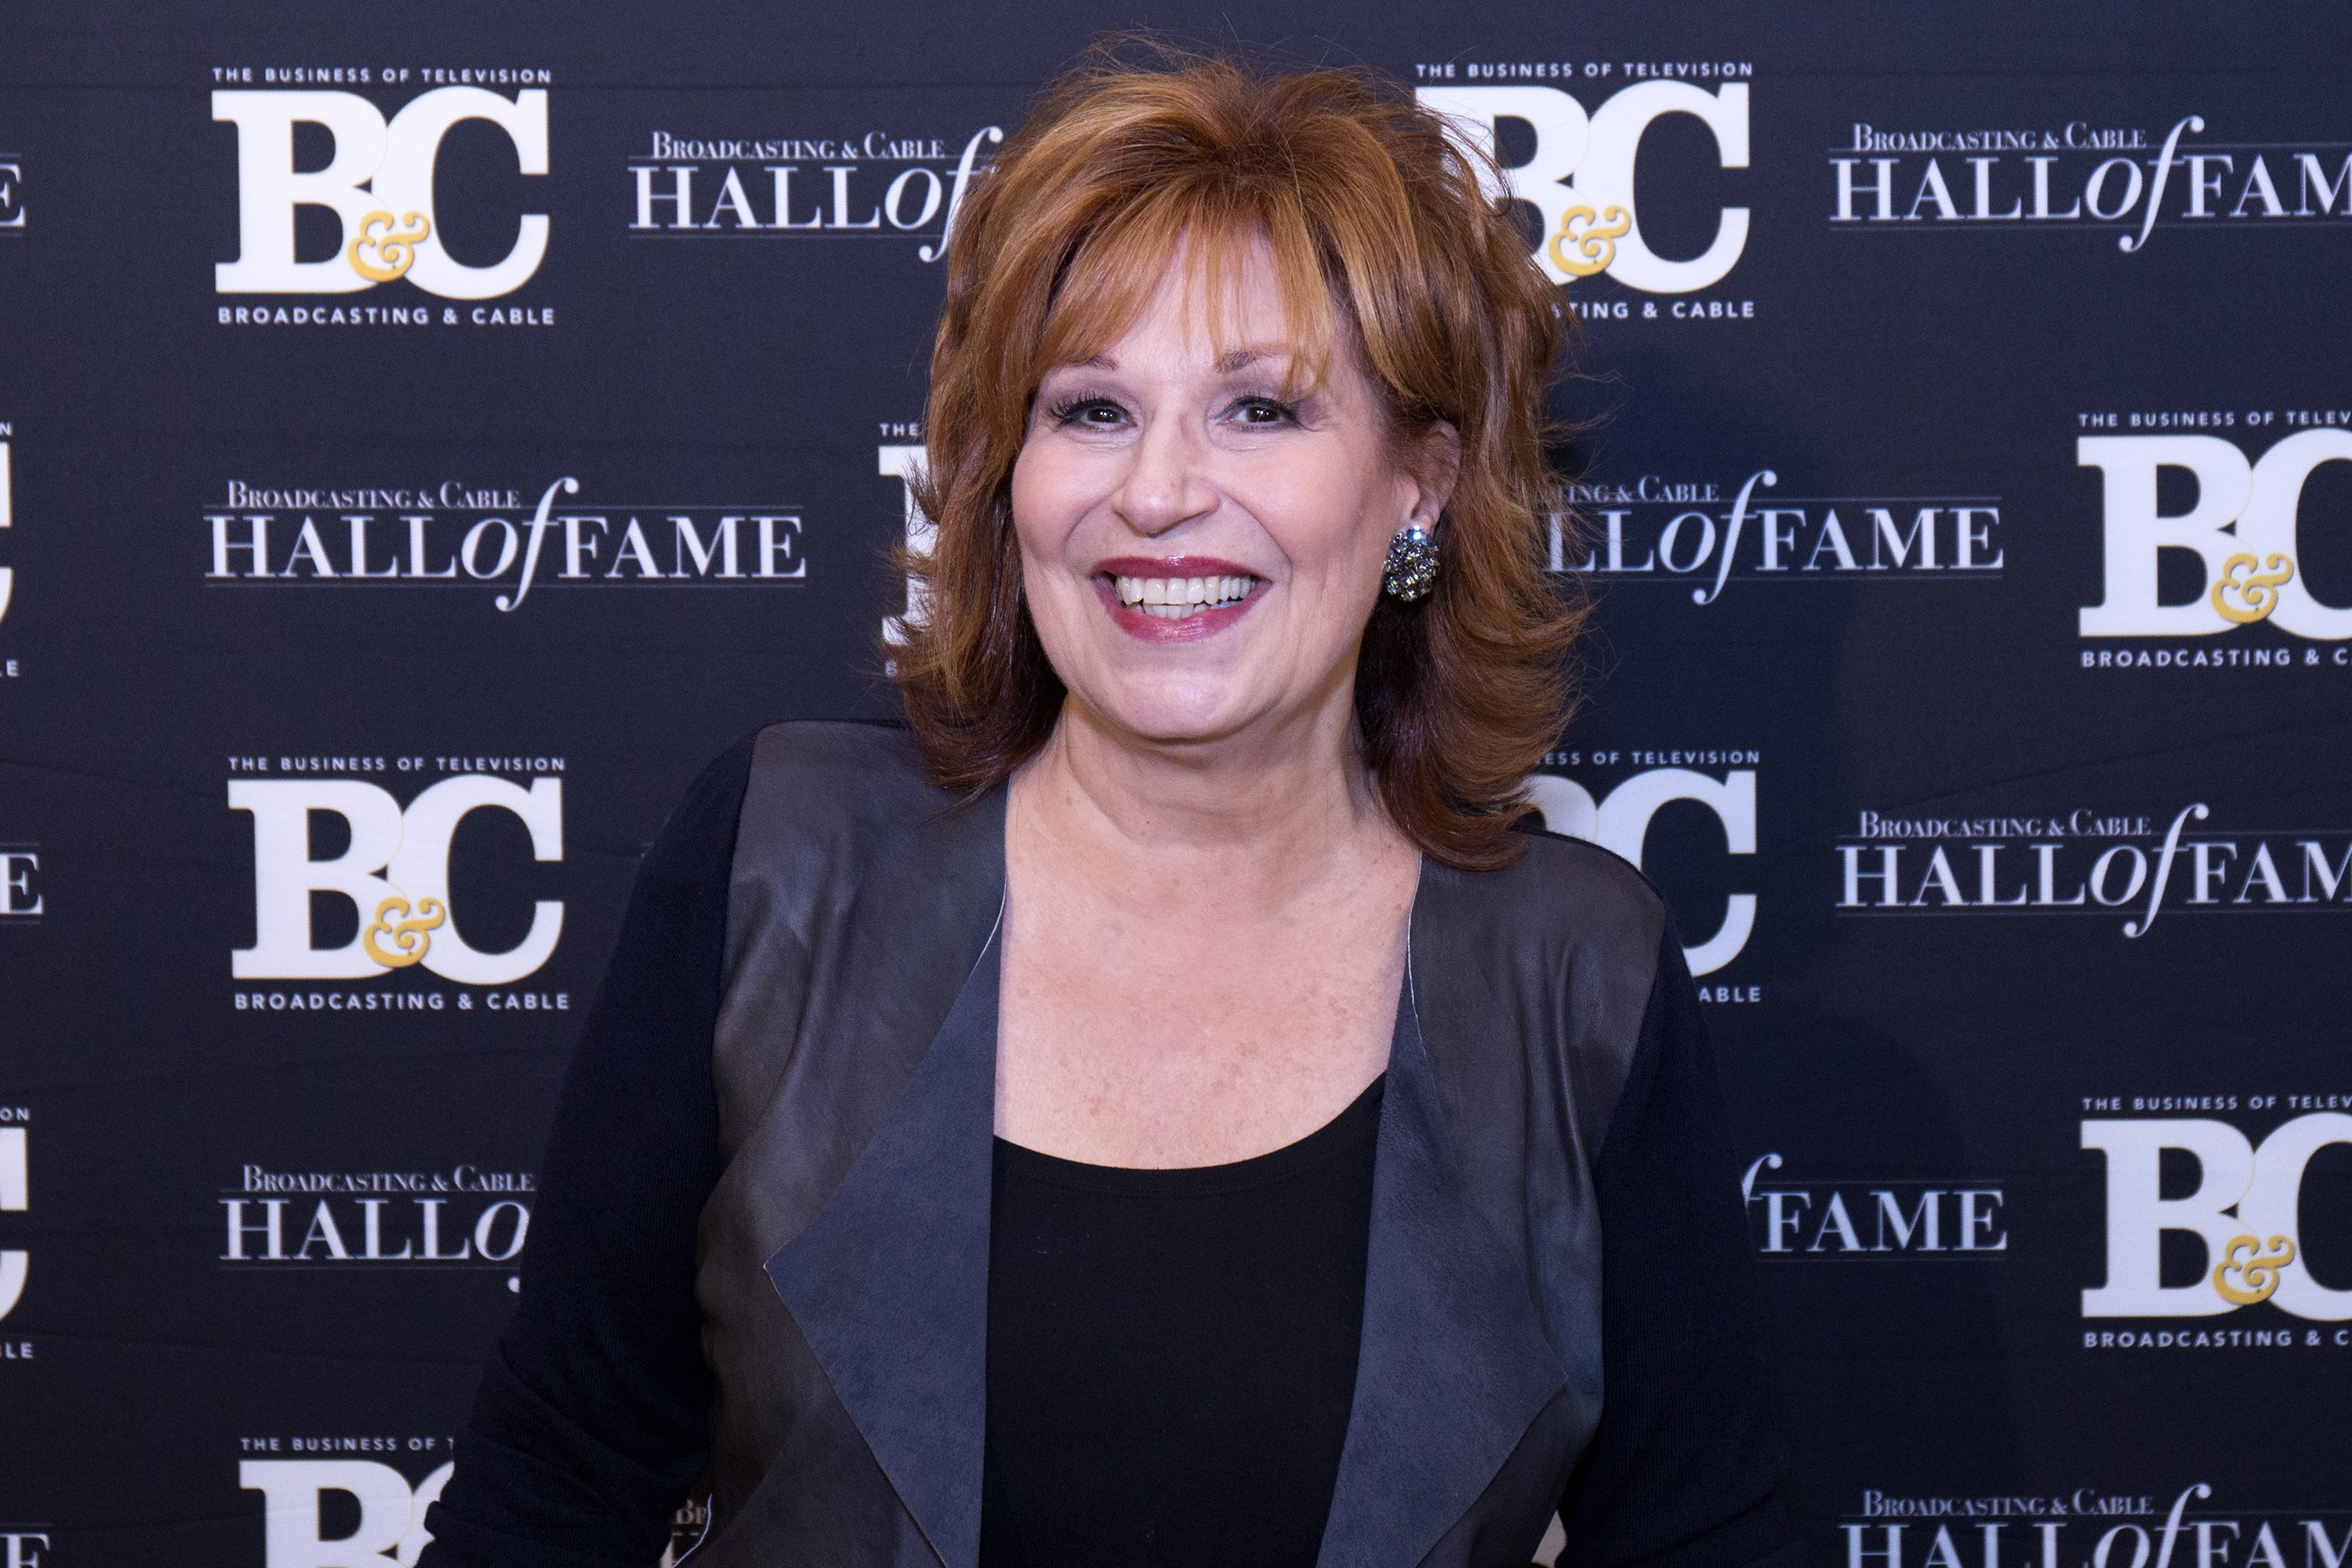 Joy Behar attends the Broadcasting & Cable Hall Of Fame 27th Anniversary Gala in New York City on October 16, 2017 | Photo: Getty Images